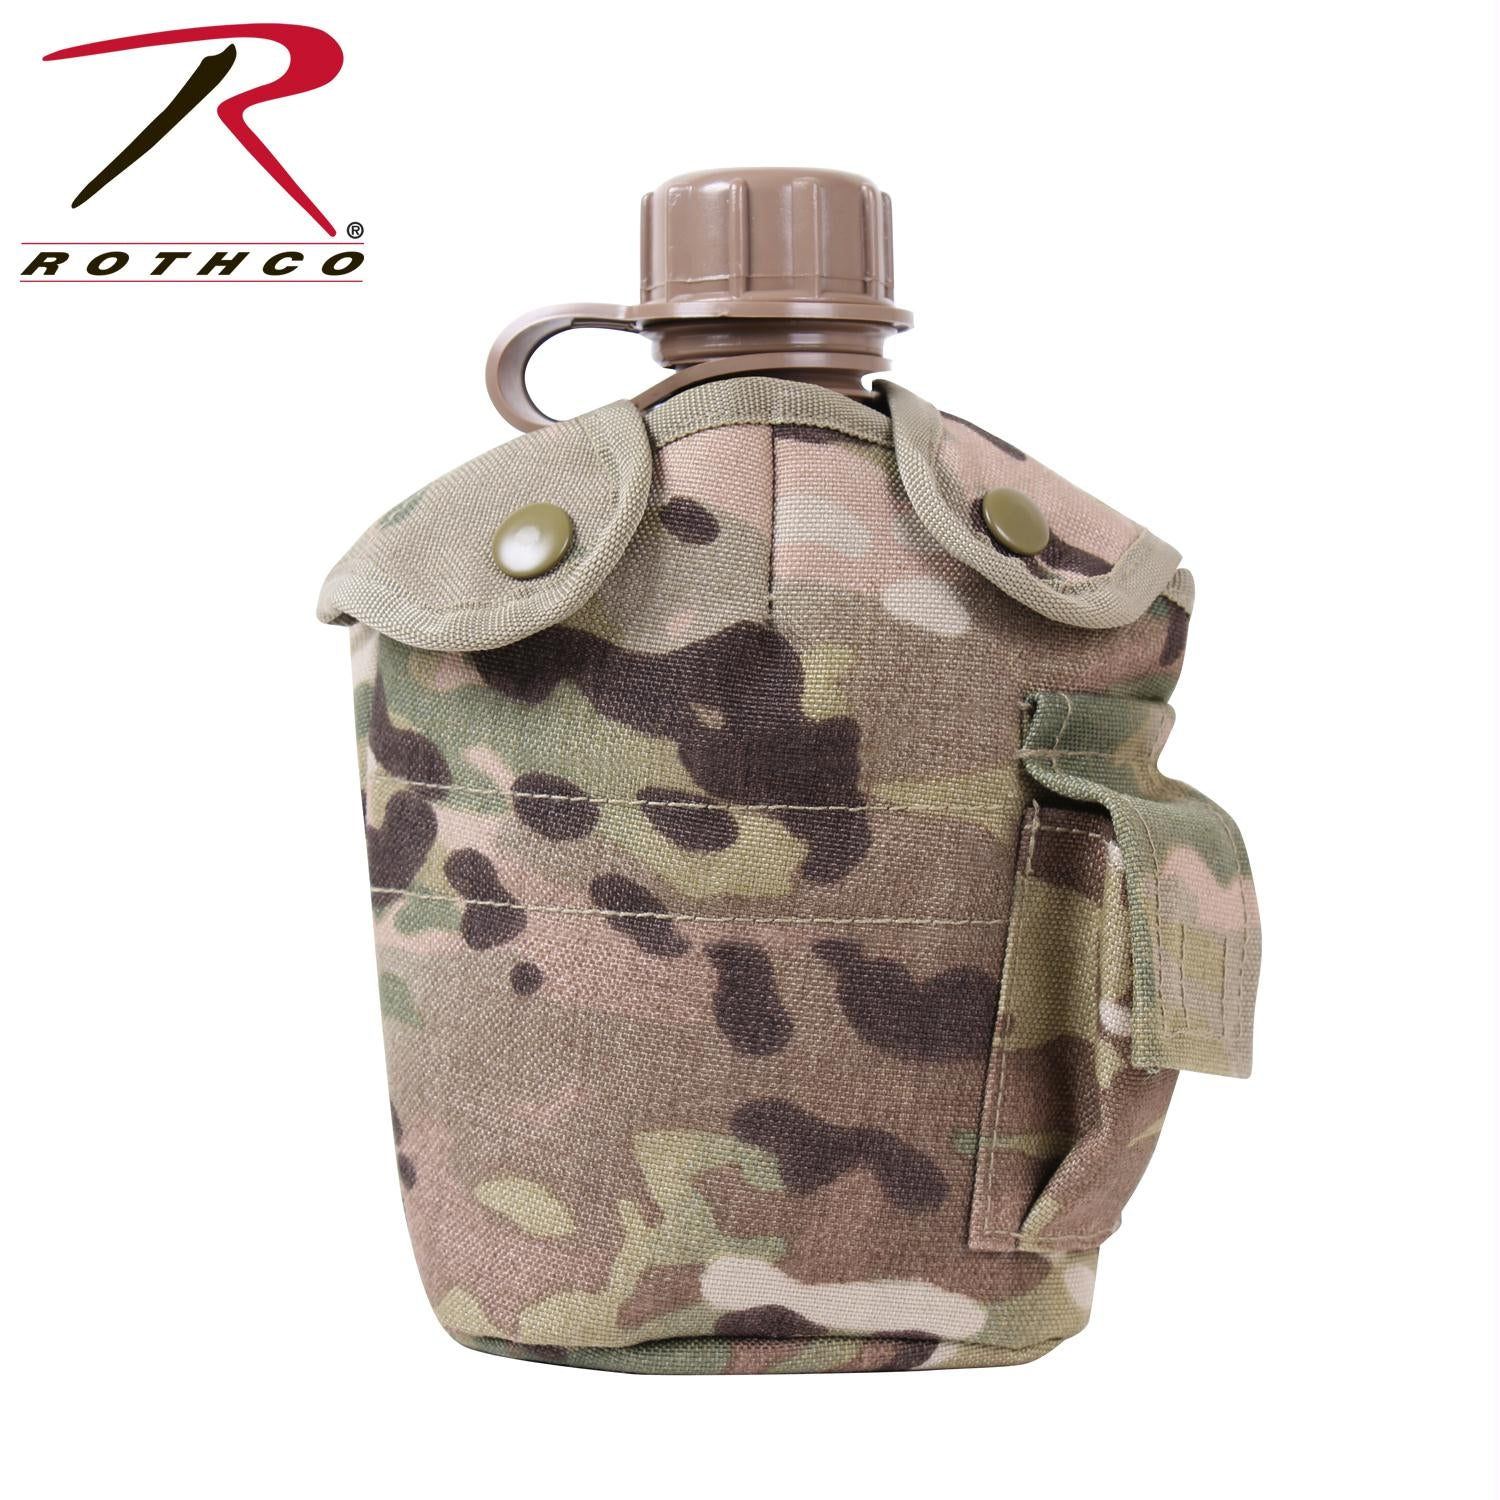 Rothco GI Style MOLLE Canteen Cover - MultiCam